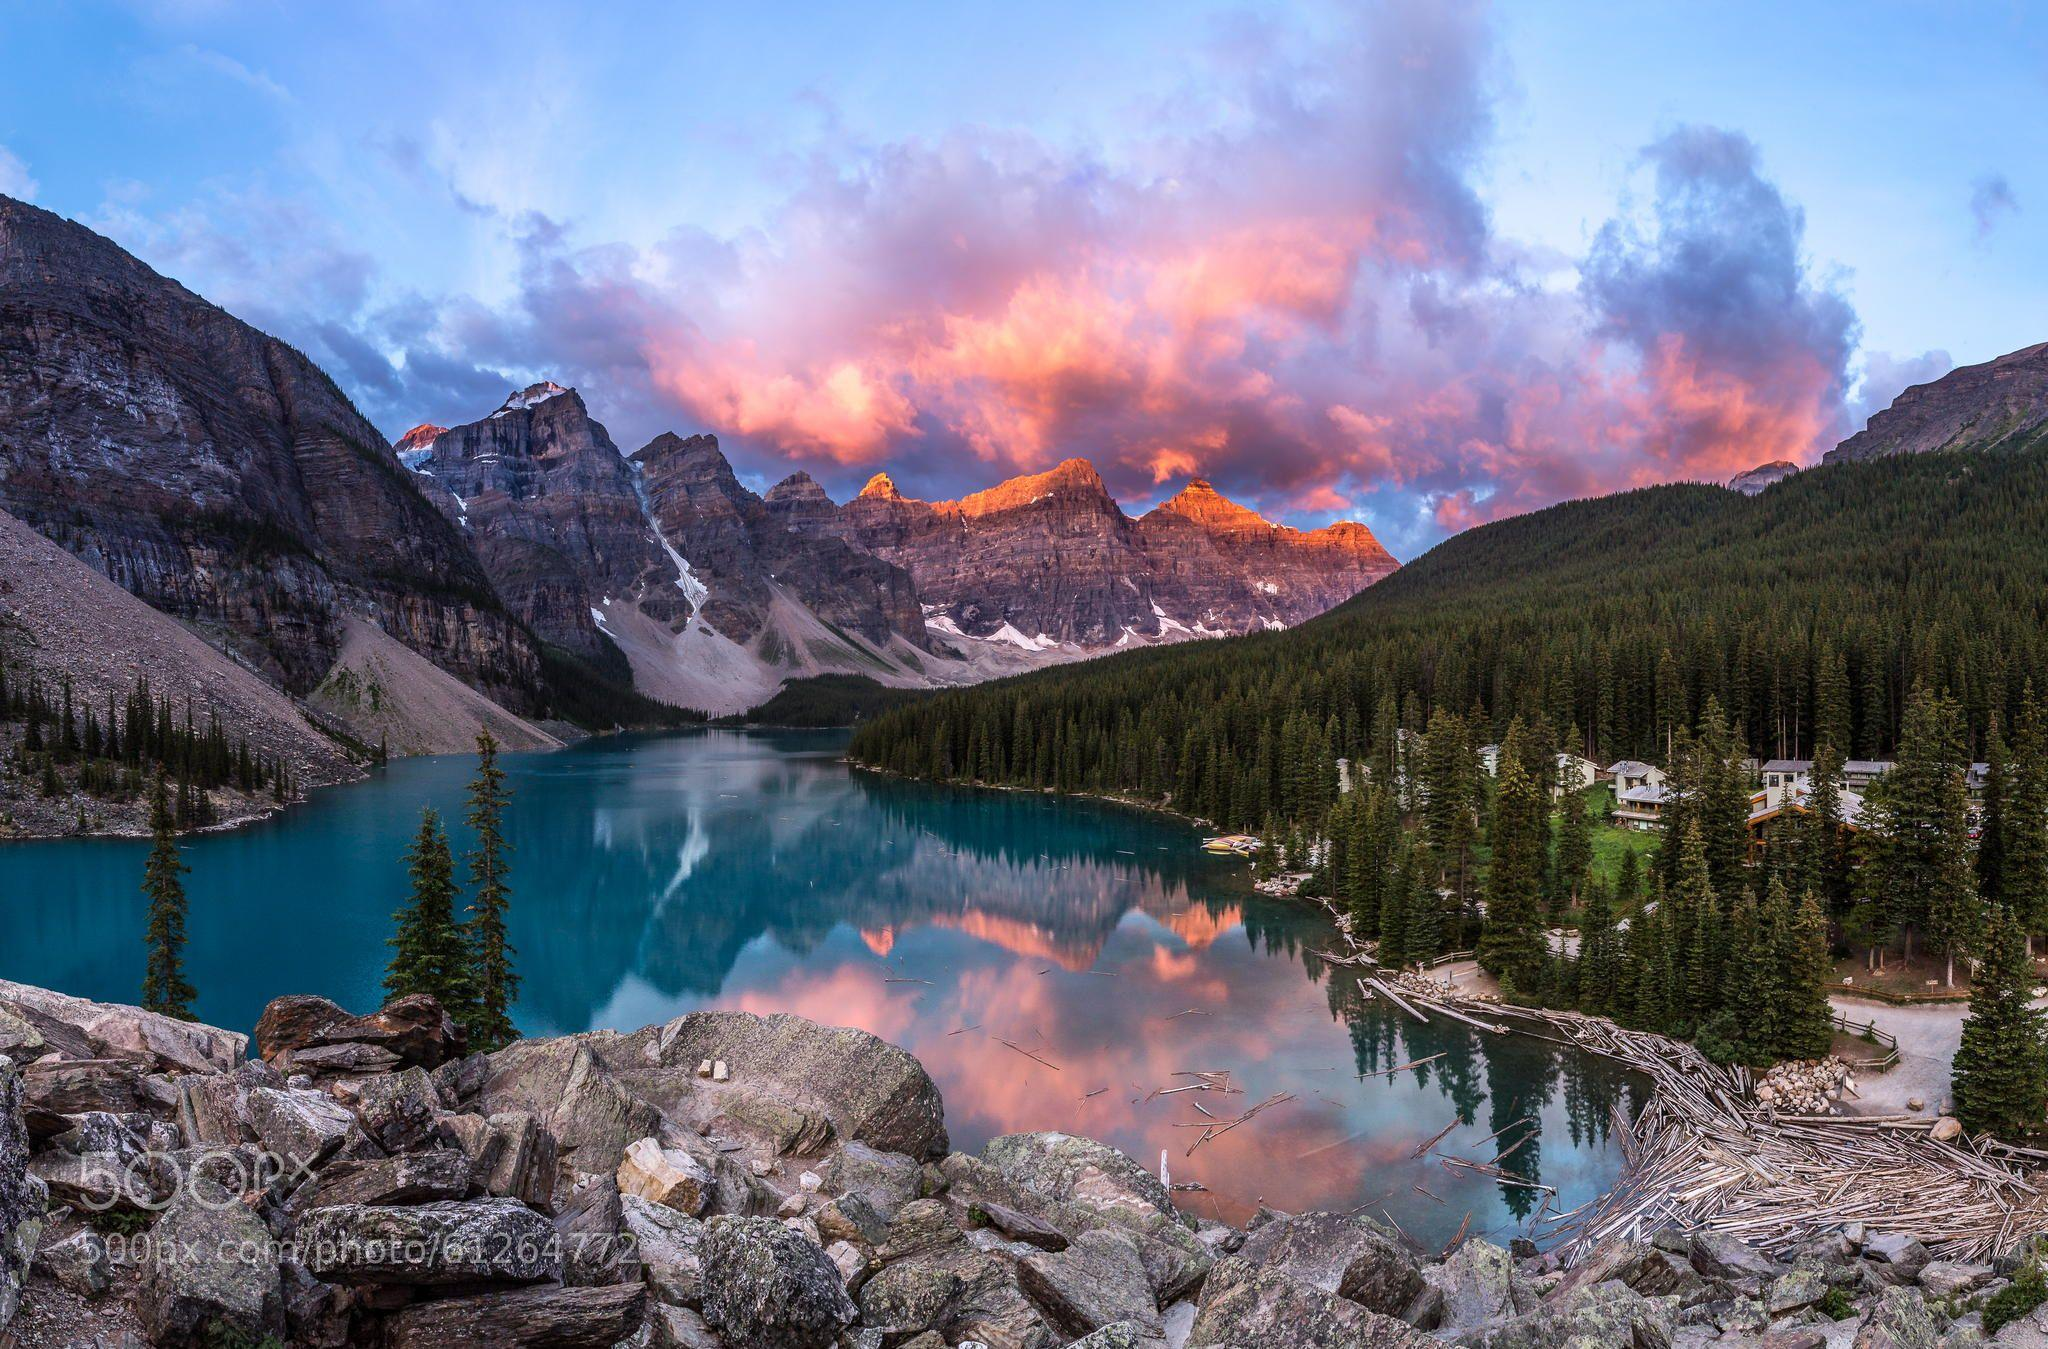 A beautiful morning sunrise in Moraine Lake, Banff National Park